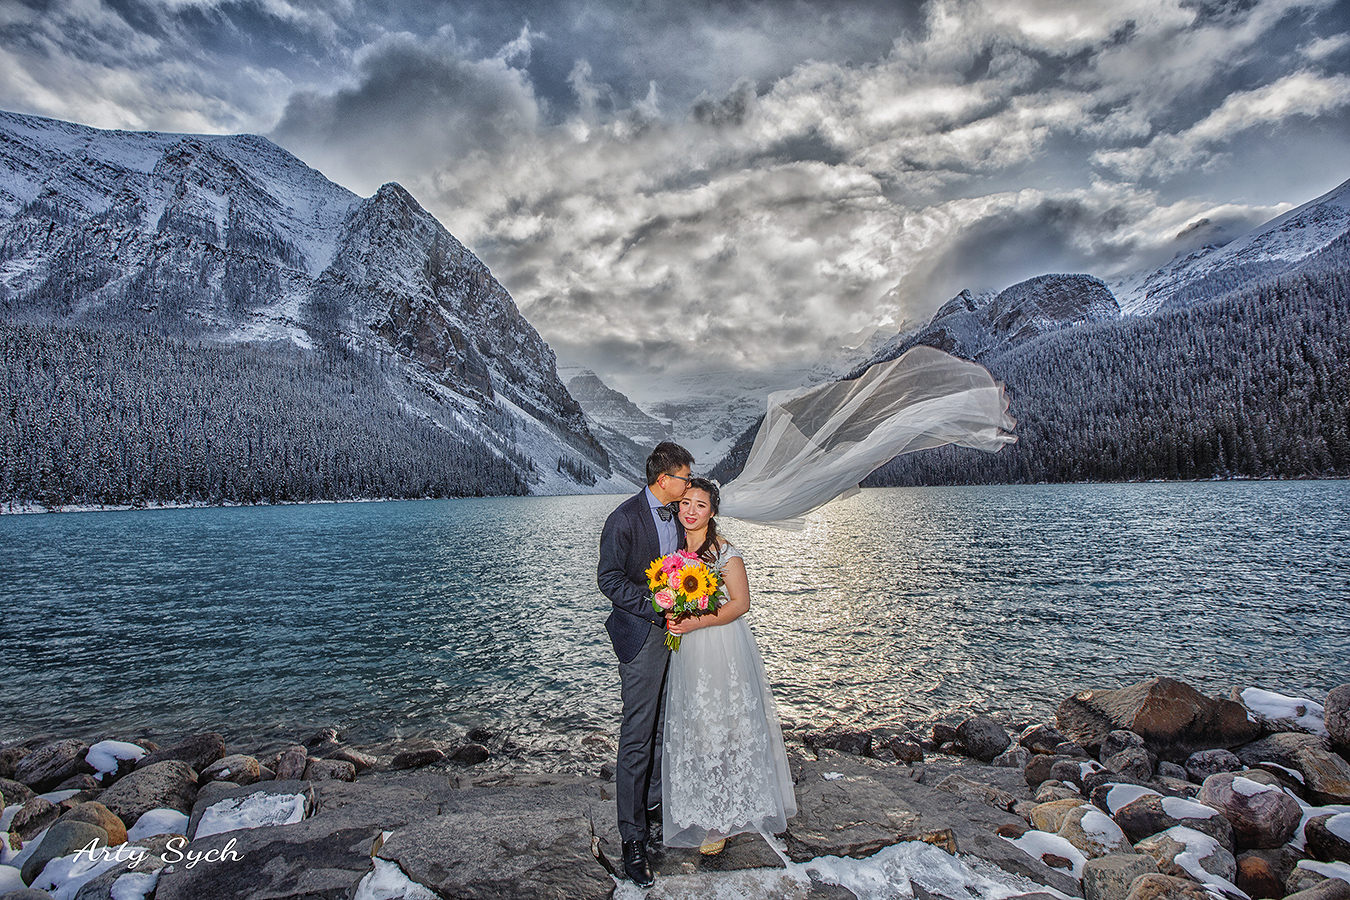 Calgary Edmonton wedding photography_arty_films_arty_sych_